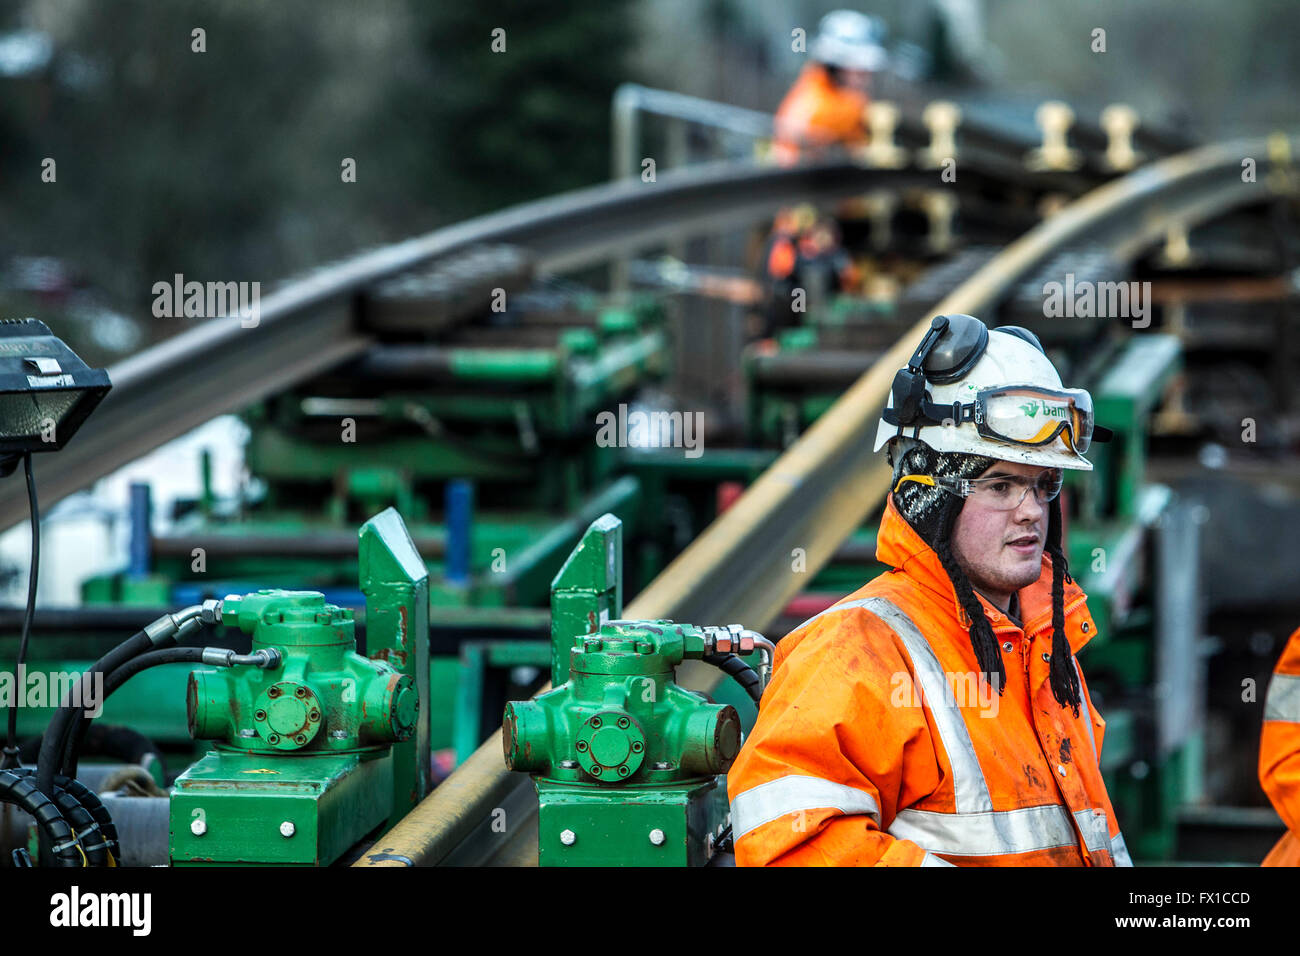 Rail track arrives in Galashiels for Borders Railway - Stock Image